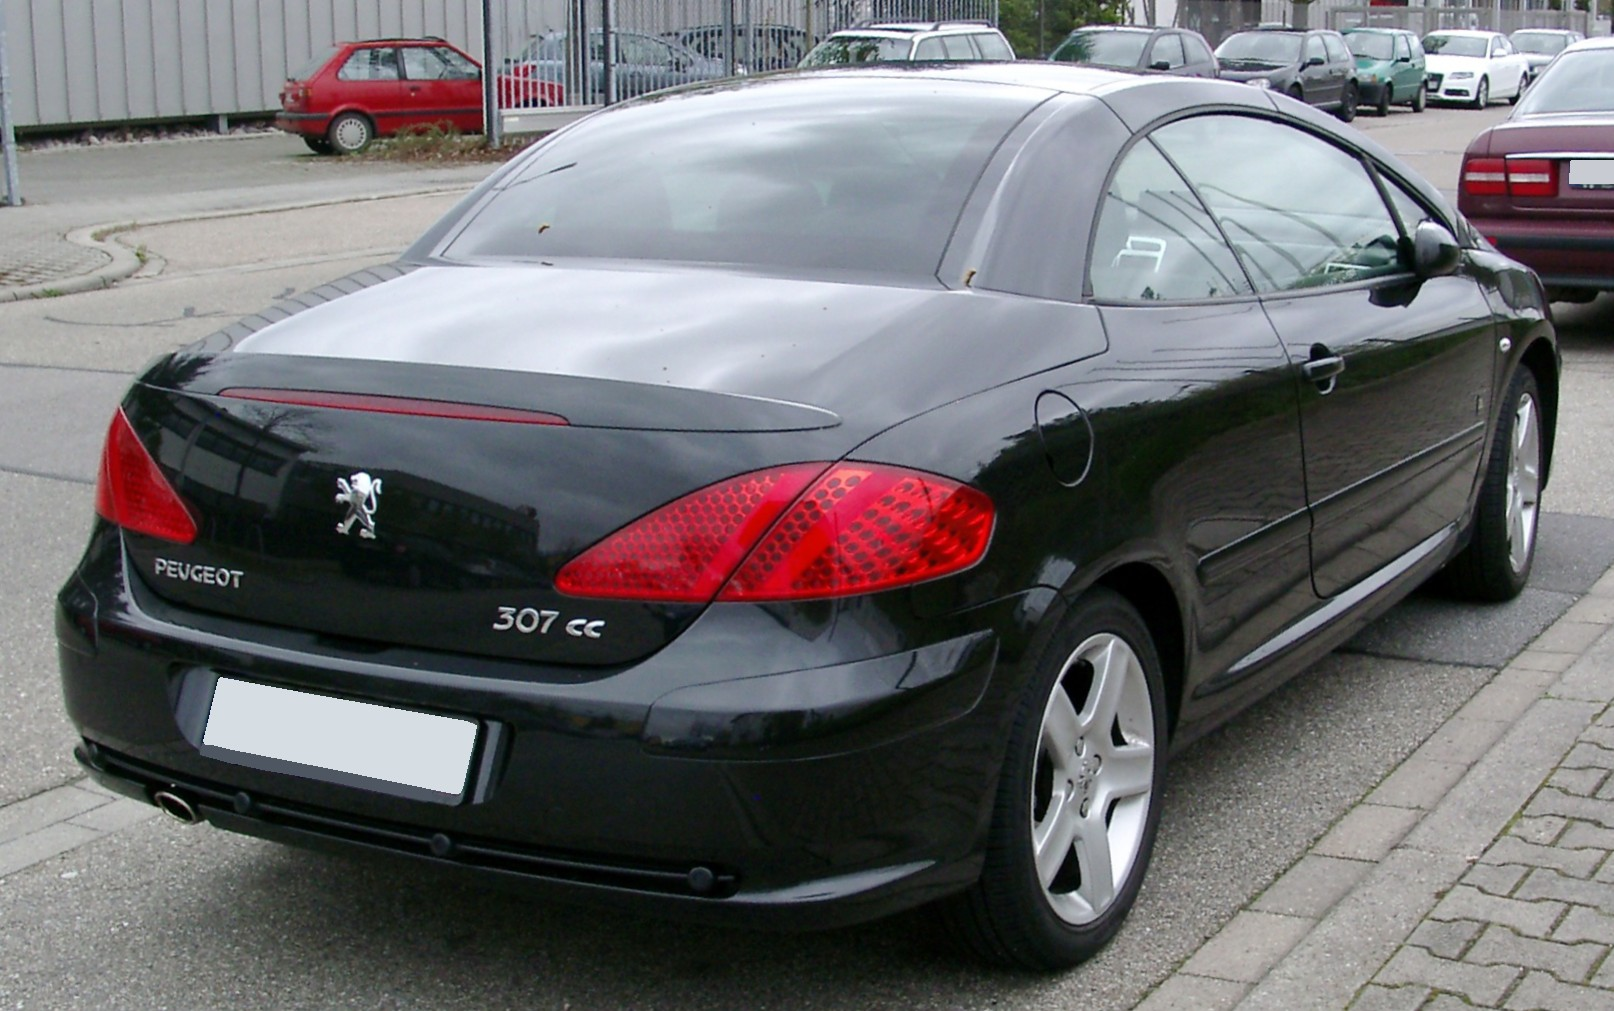 2004 peugeot 307 cc pictures information and specs auto. Black Bedroom Furniture Sets. Home Design Ideas